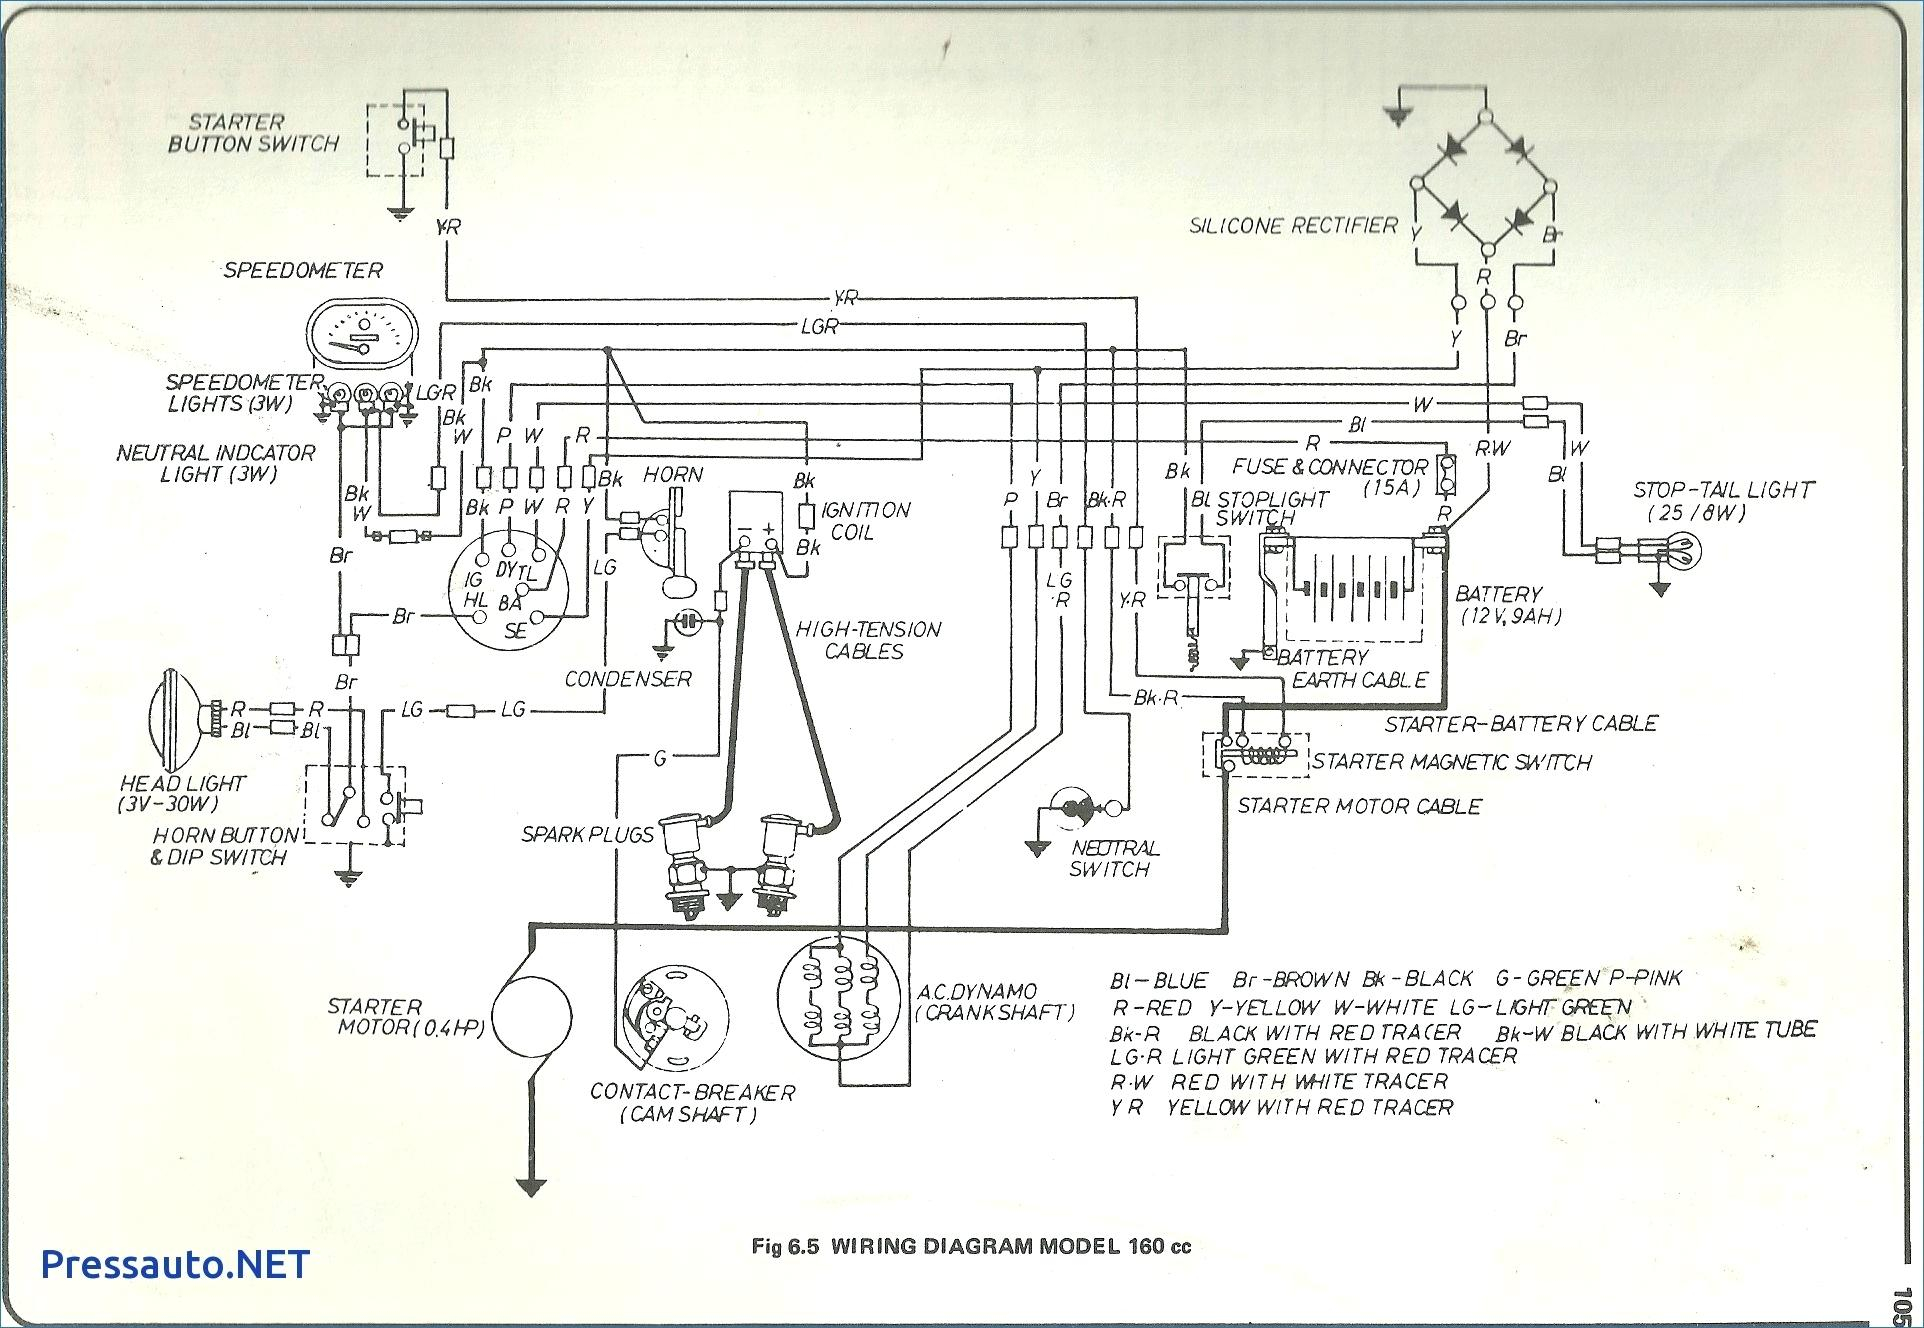 kenmore dryer wiring diagram collection-wiring diagram for kenmore dryer  beautiful maytag dryer wiring schematic